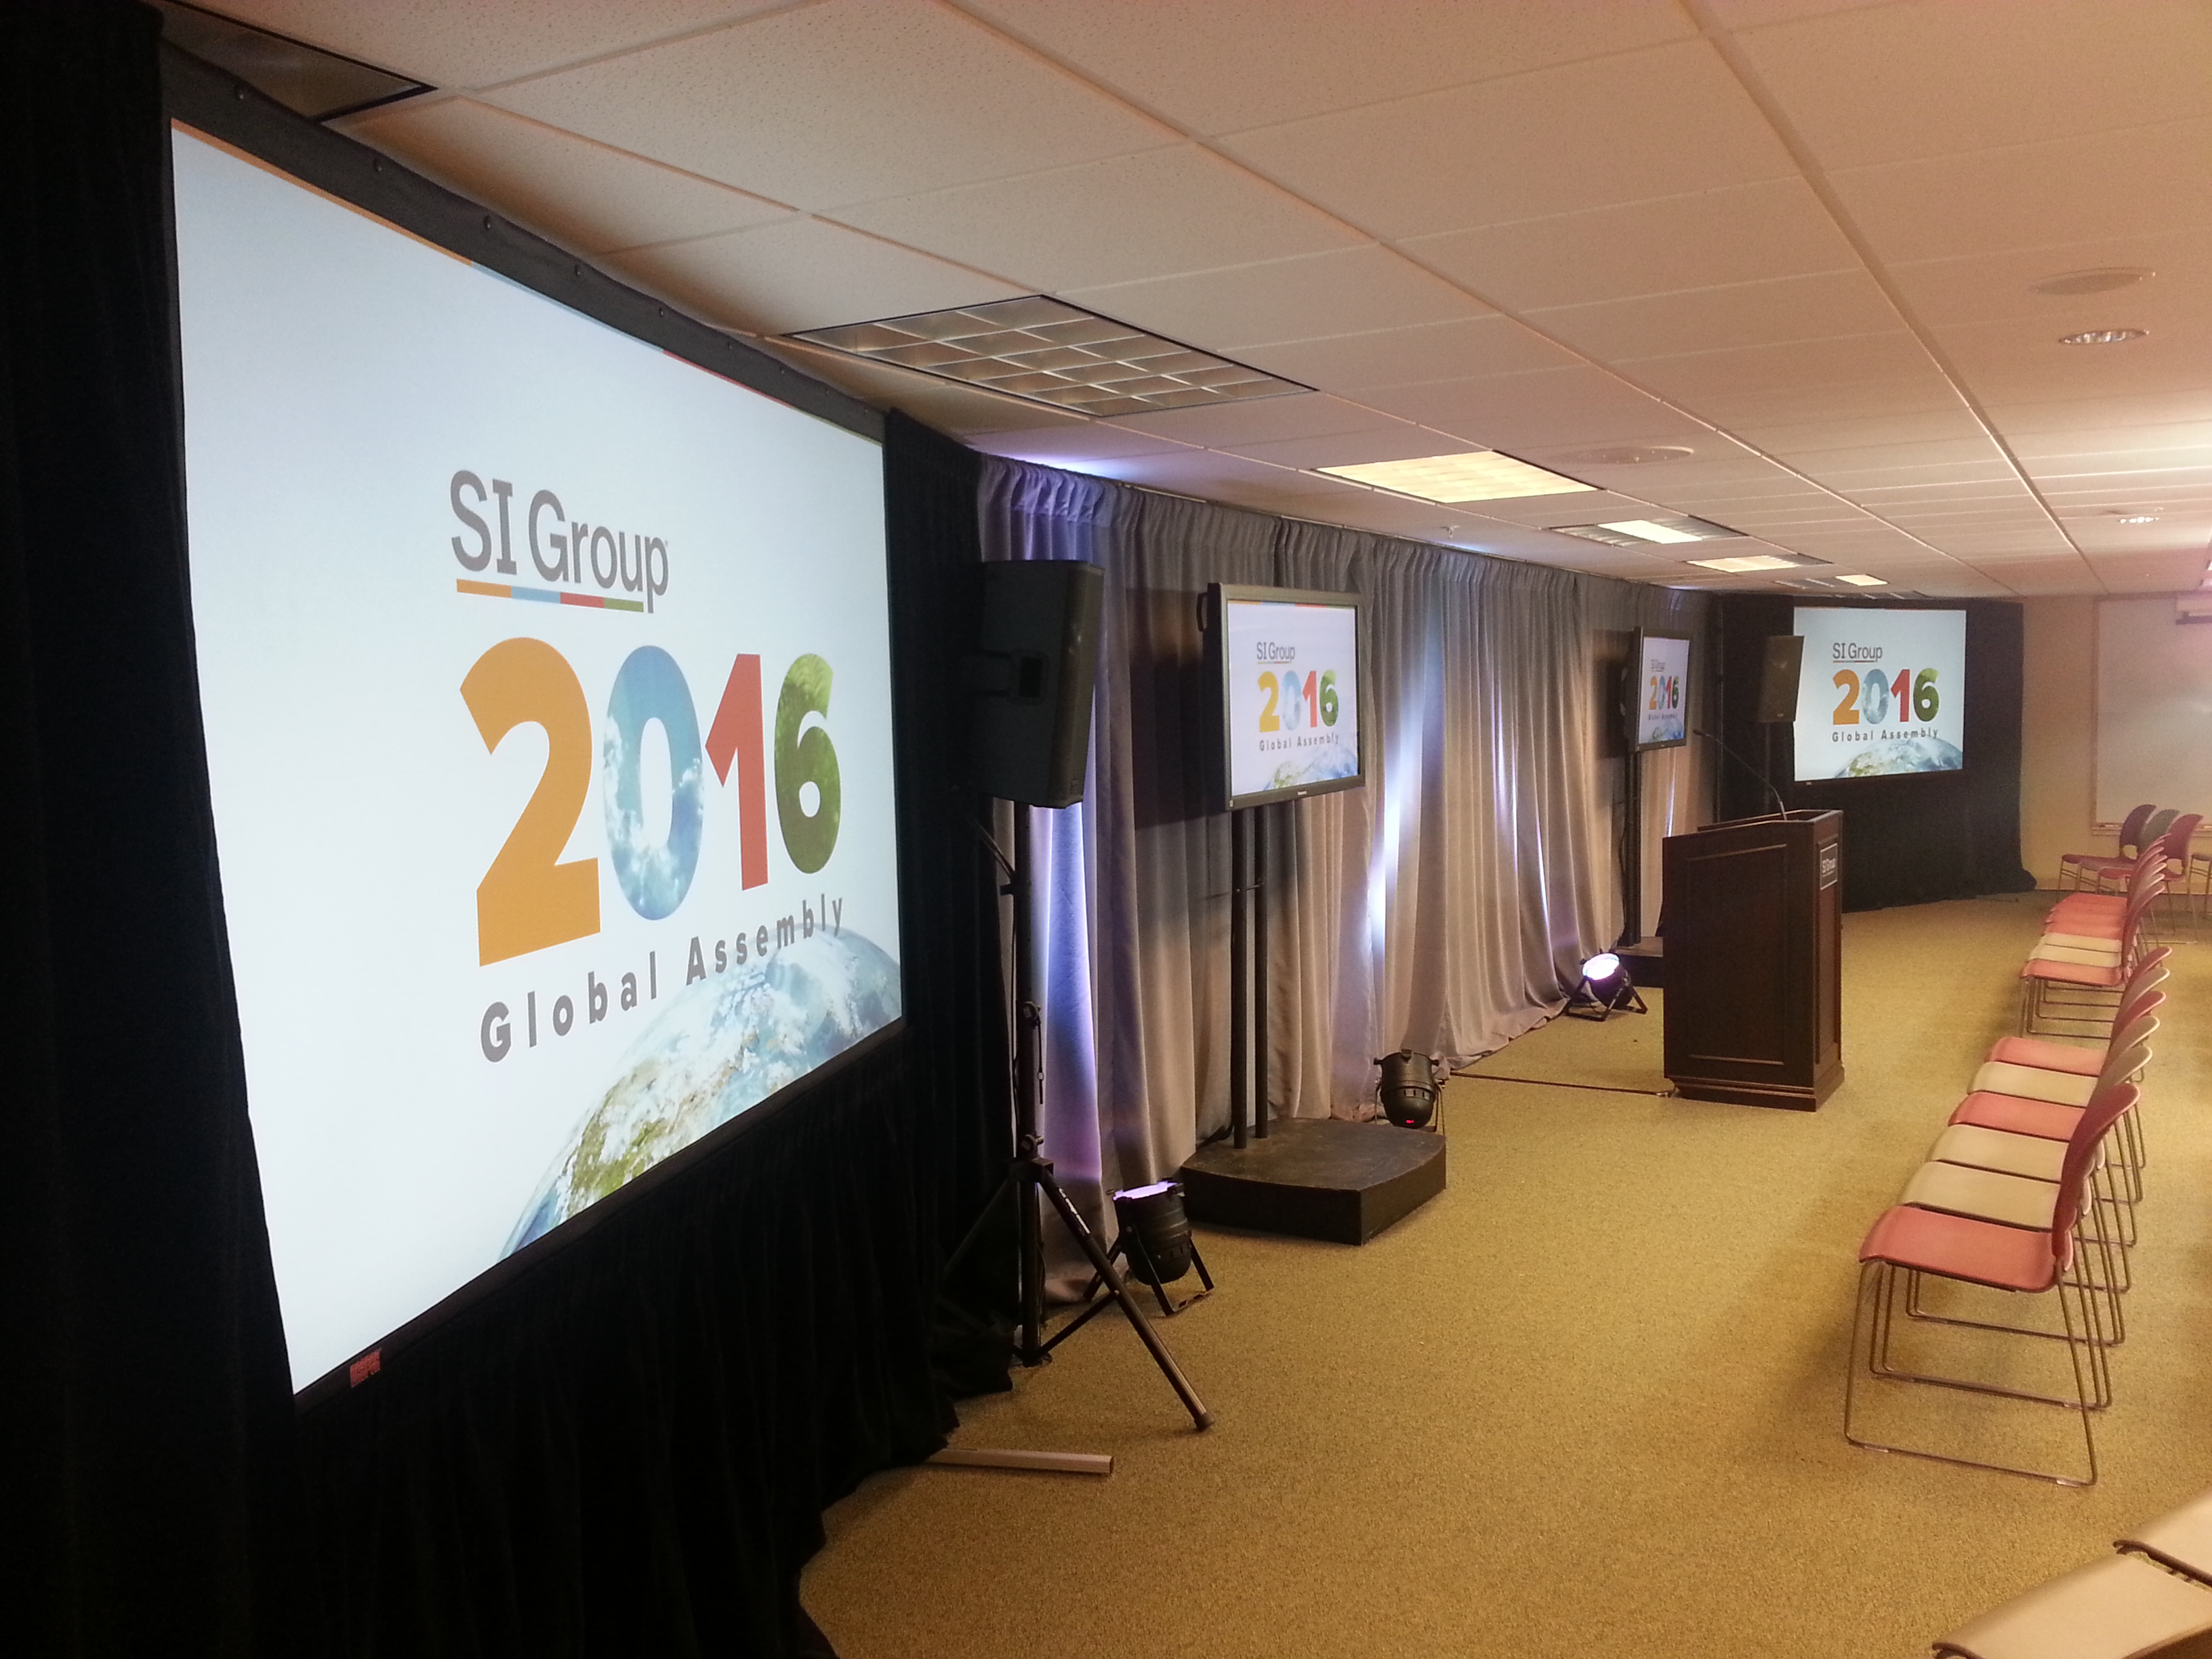 TVI provides event presentation services for SI Group Global Assembly reaching employees worldwide